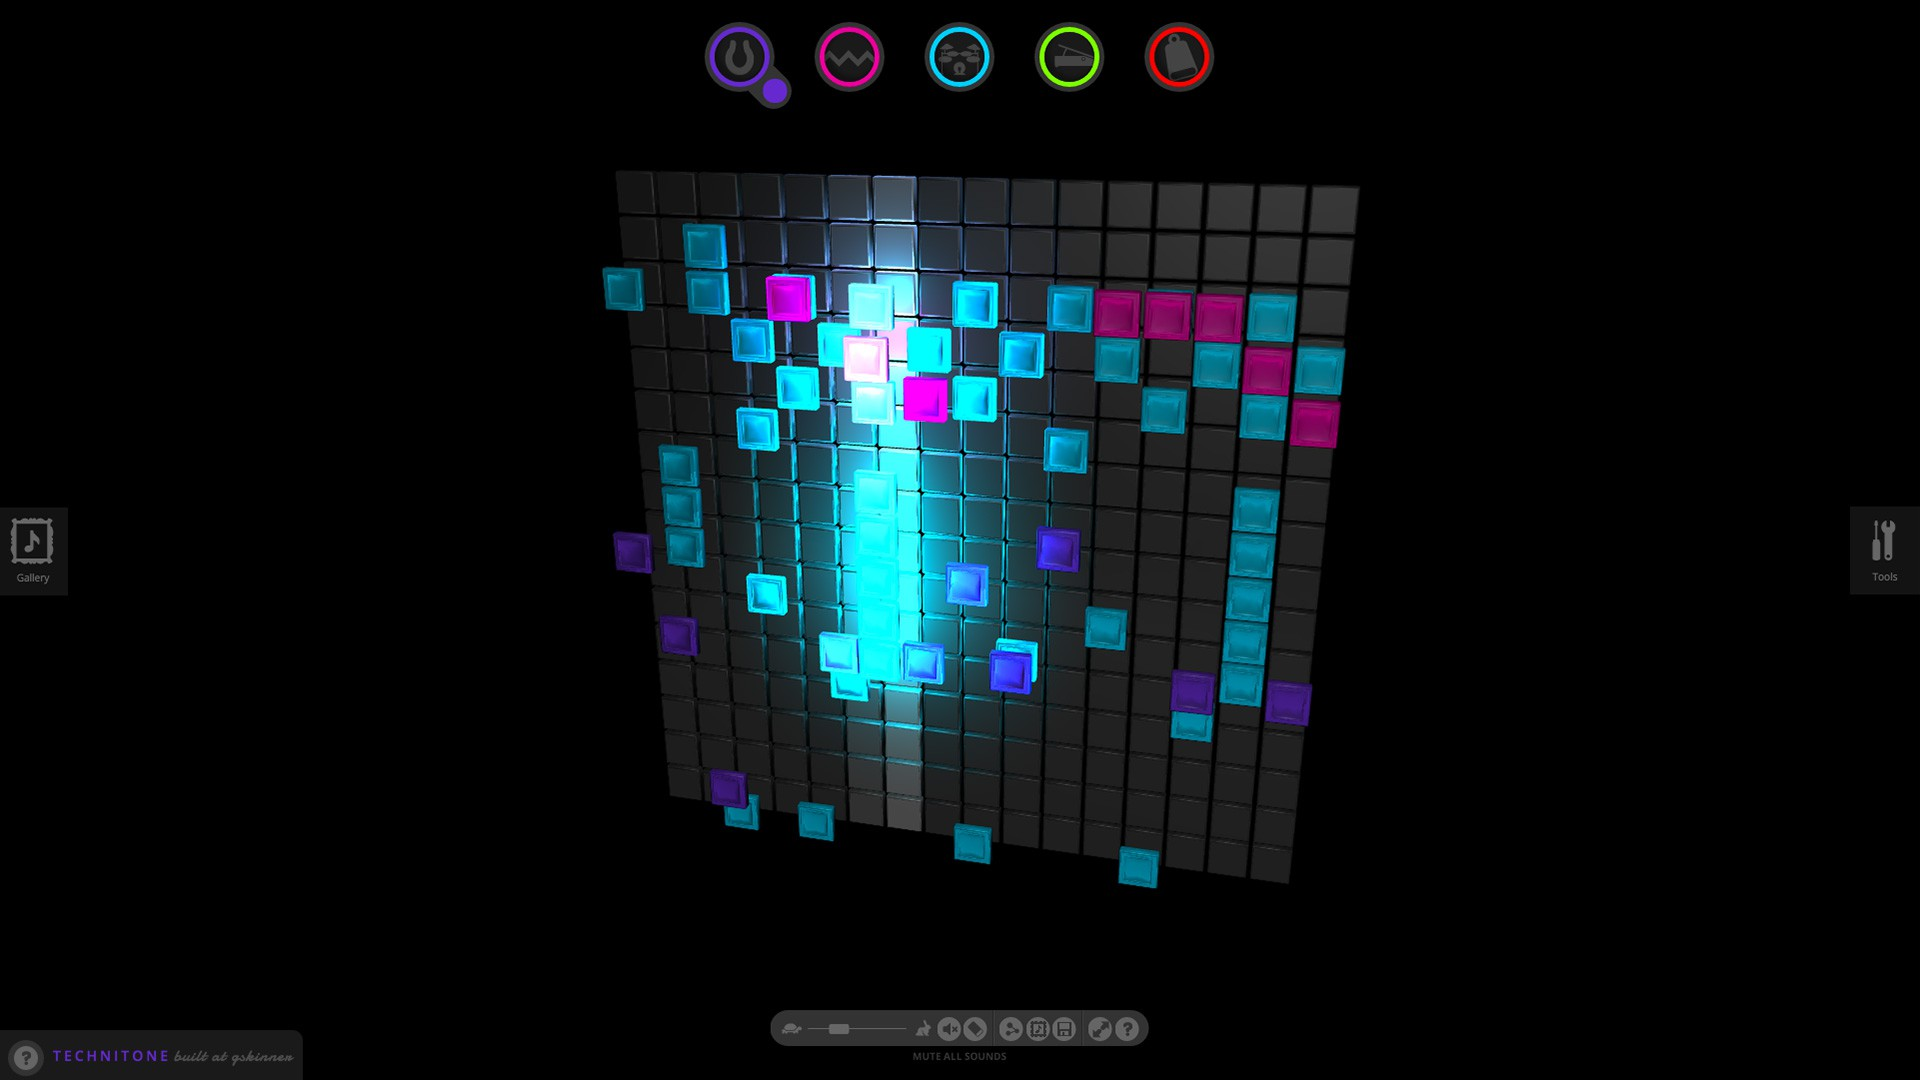 The new Technitone grid, powered by three.js